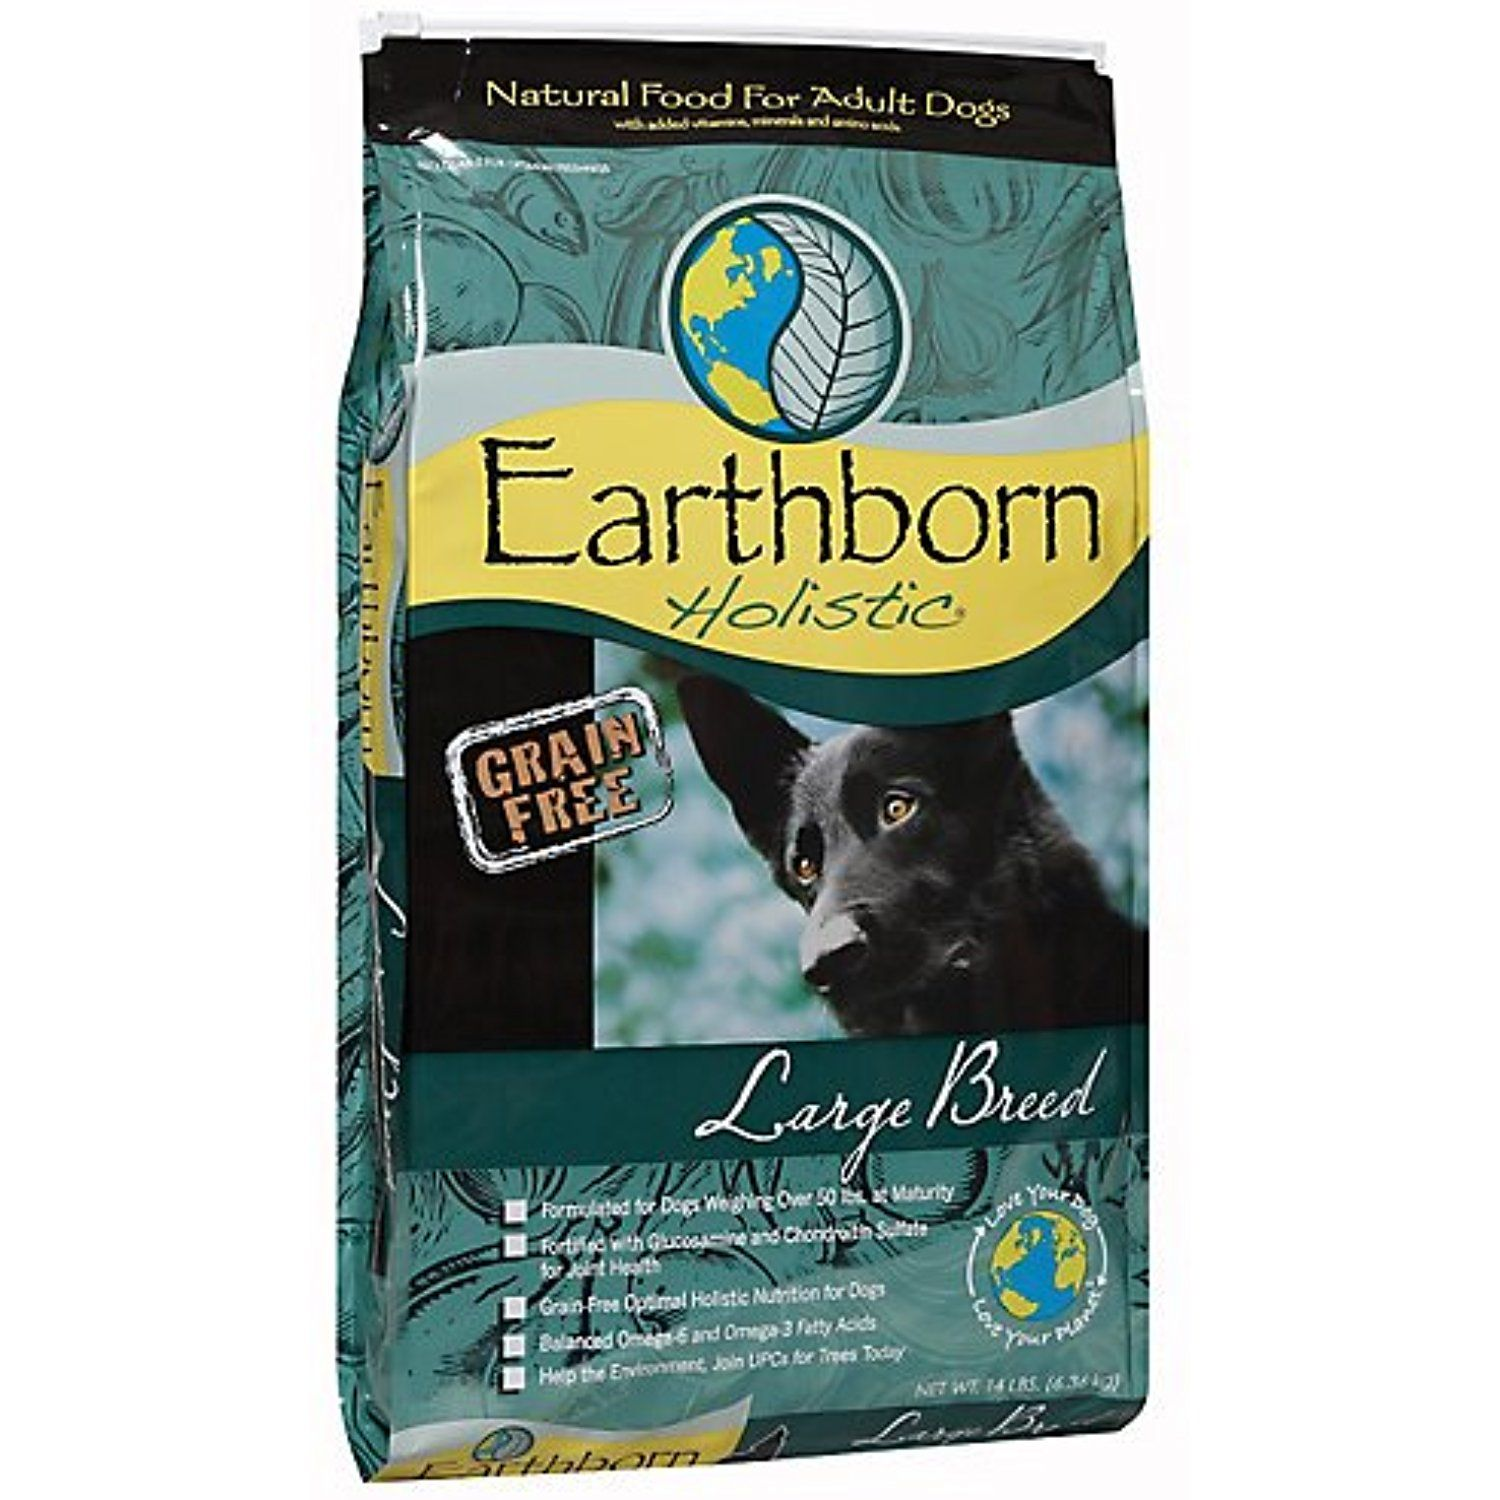 Earthborn Grain Free Large Breed Dry Dog Food 28lb You